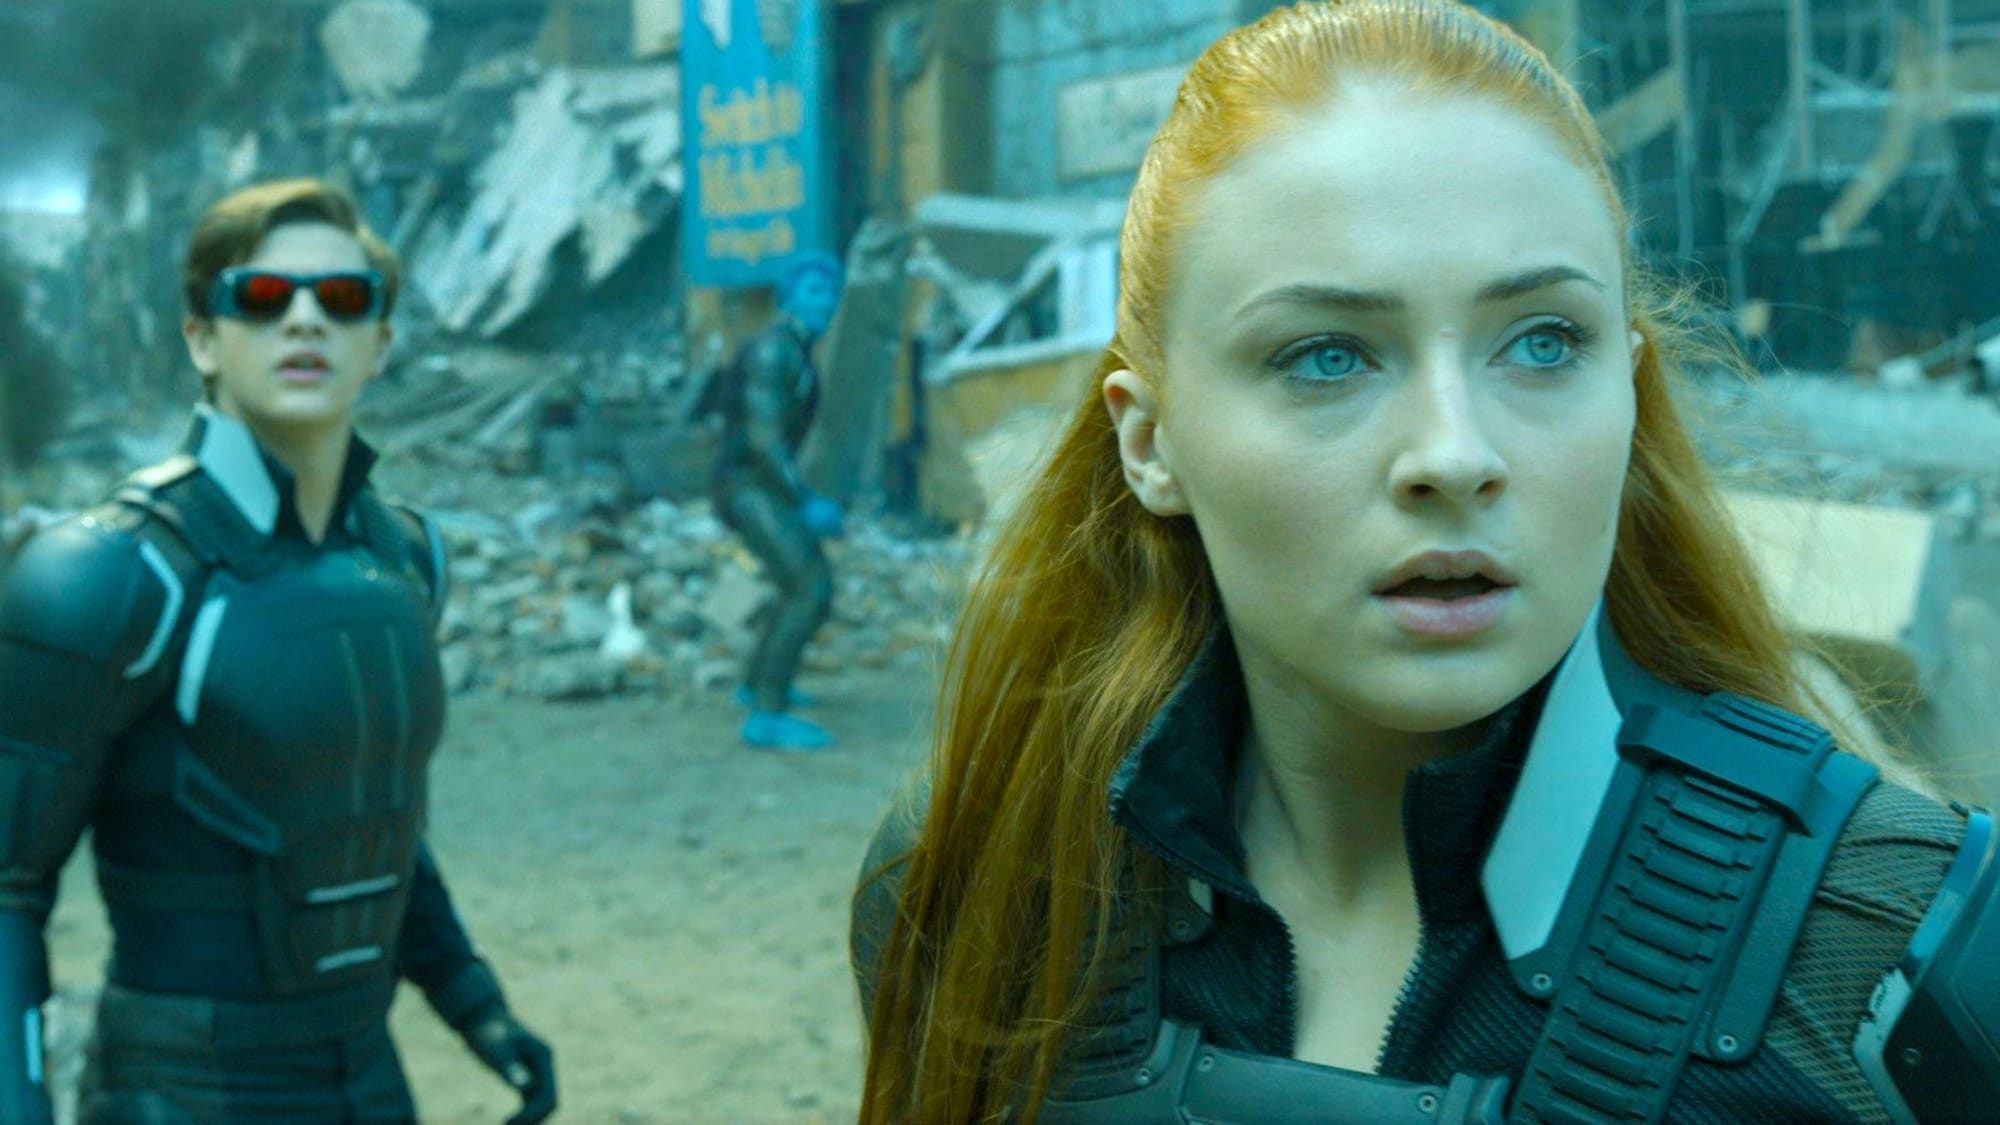 Sophie Turner reunites with X-Men vets, and more news